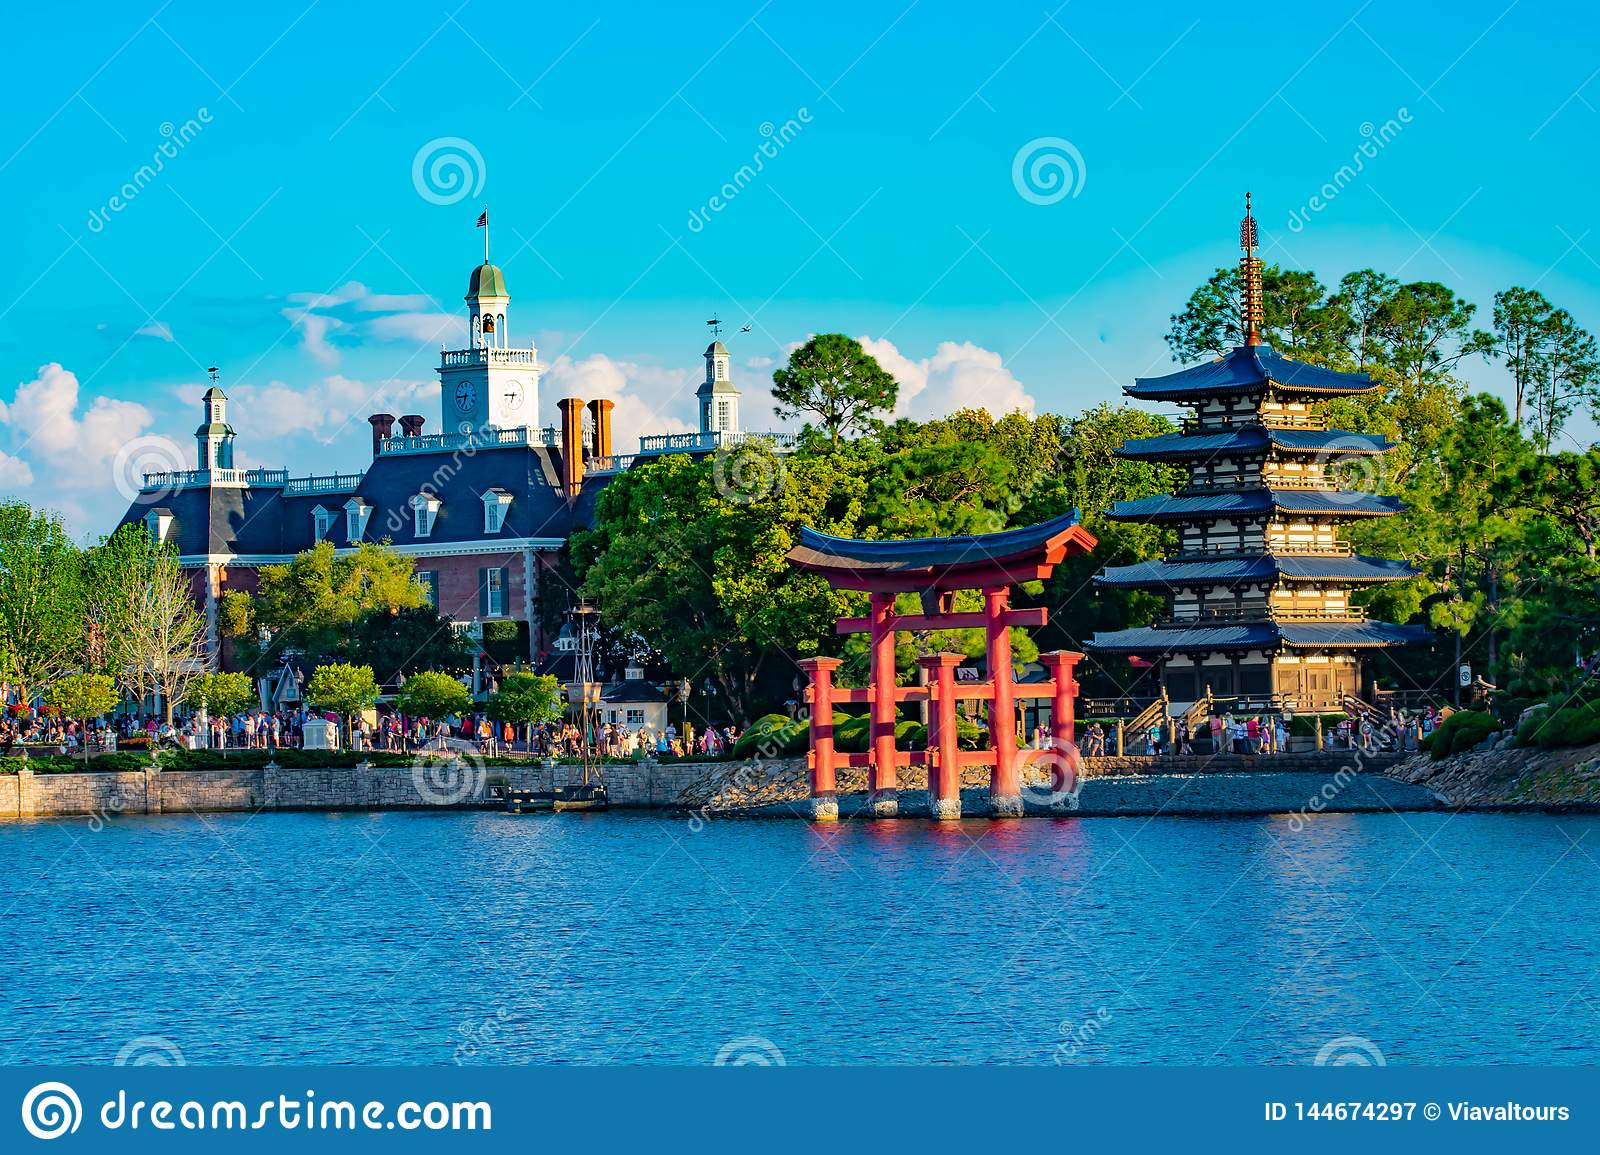 Panoramic View Of Japan Pavilion American Adventure Pavilion And Blue Lake At Epcot In Walt Disney World Editorial Photography Image Of Kingdom Children 144674297